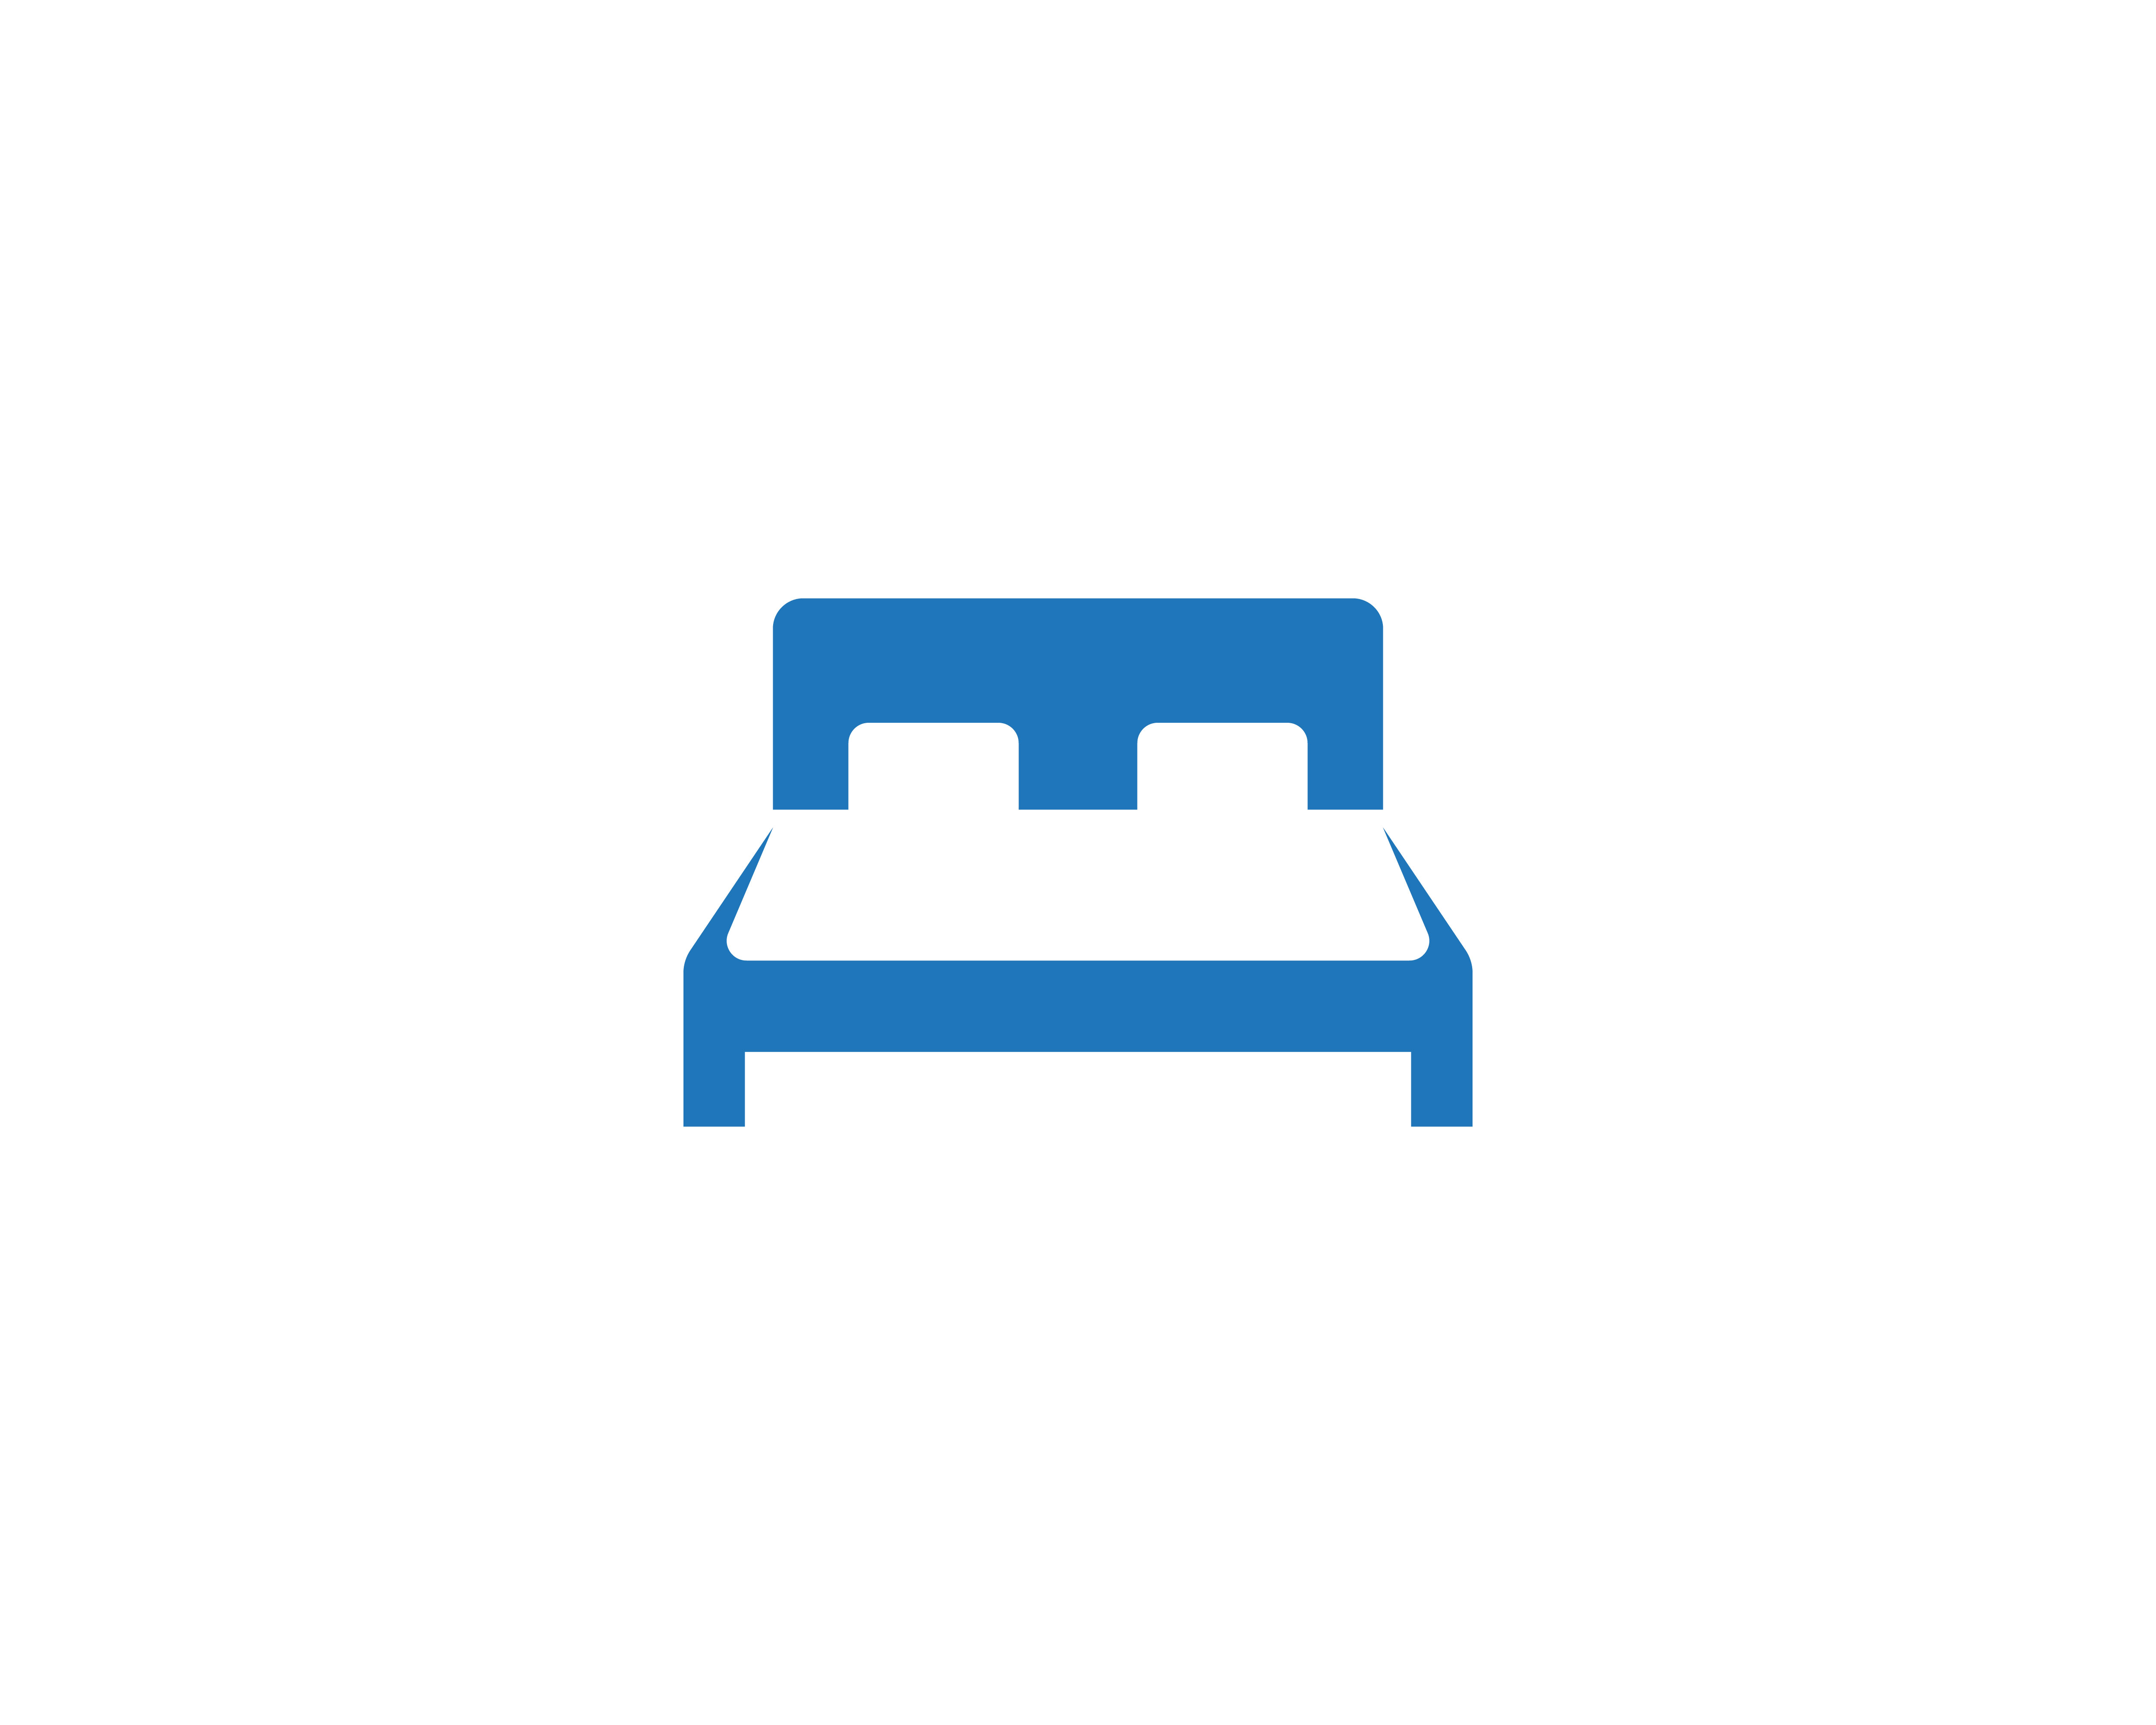 Bed logo and symbol hotel business logo vector - Download ...